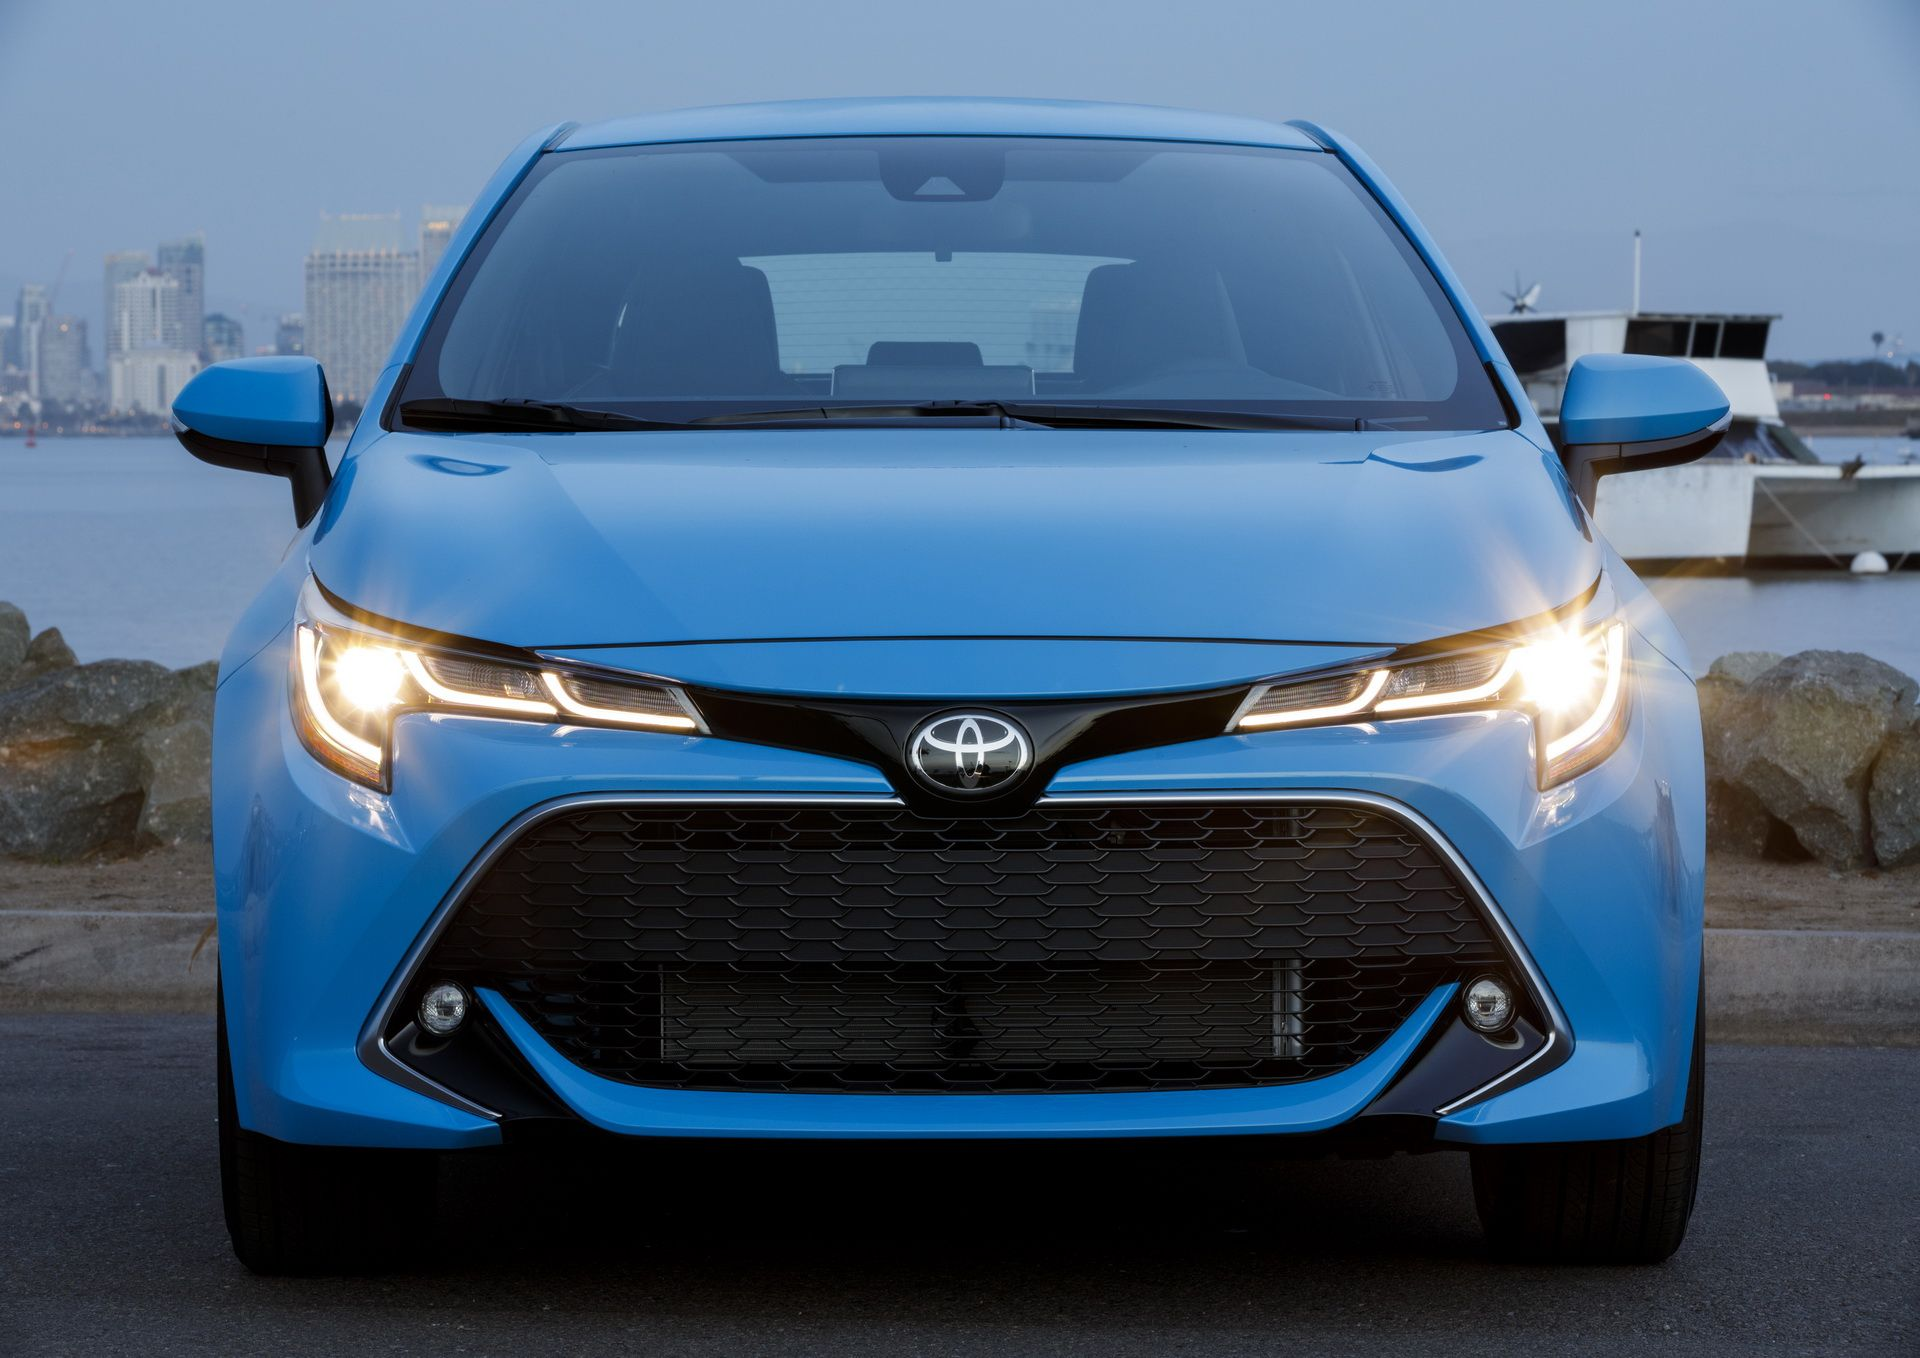 Does the tread look worn? Toyota Expected To Debut New Corolla Sedan For 2020 Model